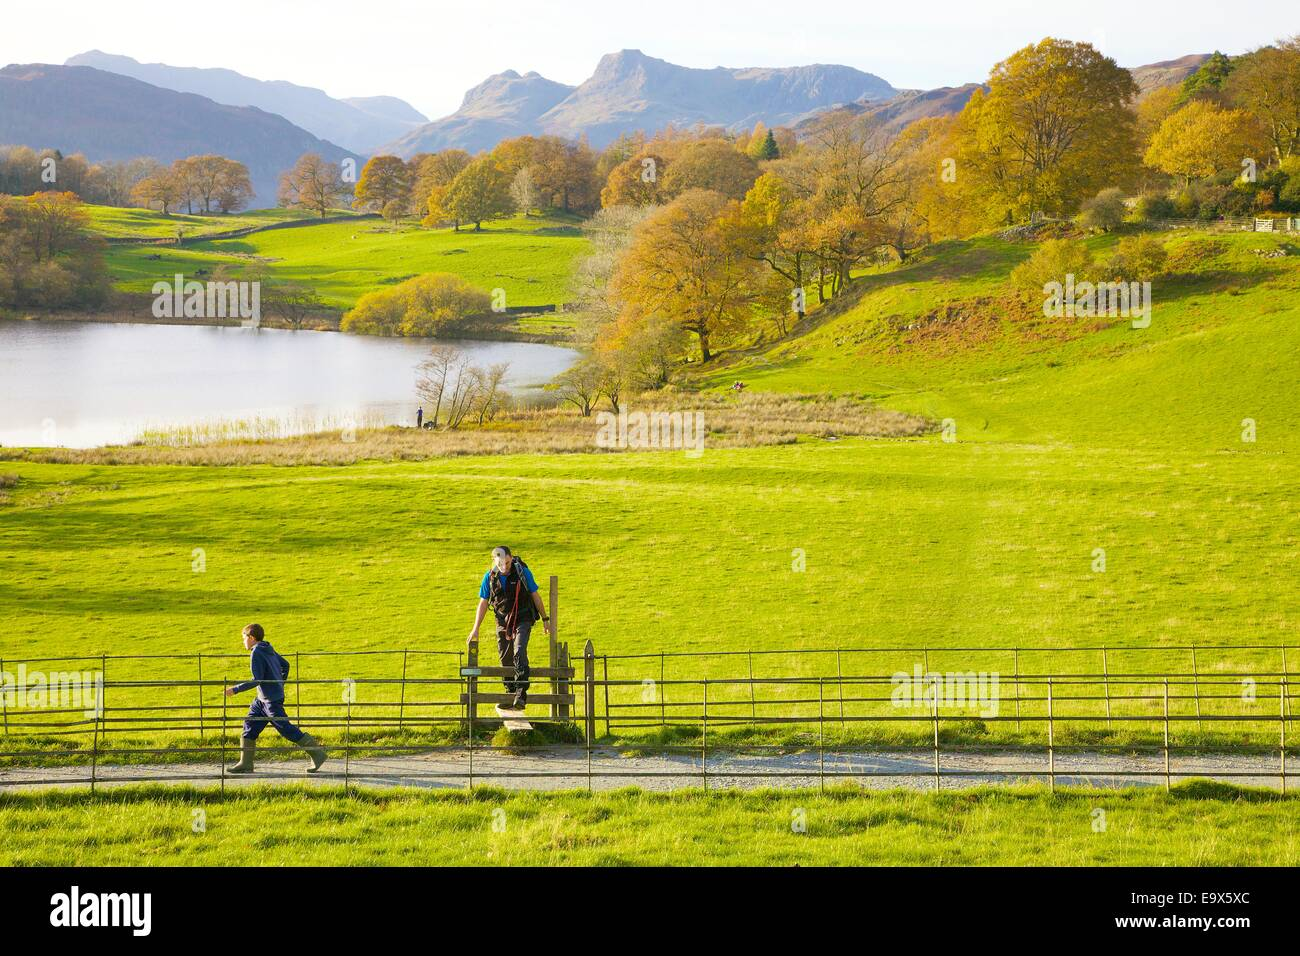 Tourists stepping over a style alongside a footpath at Loughrigg Tarn, The Lake District, Cumbria, England, UK. - Stock Image